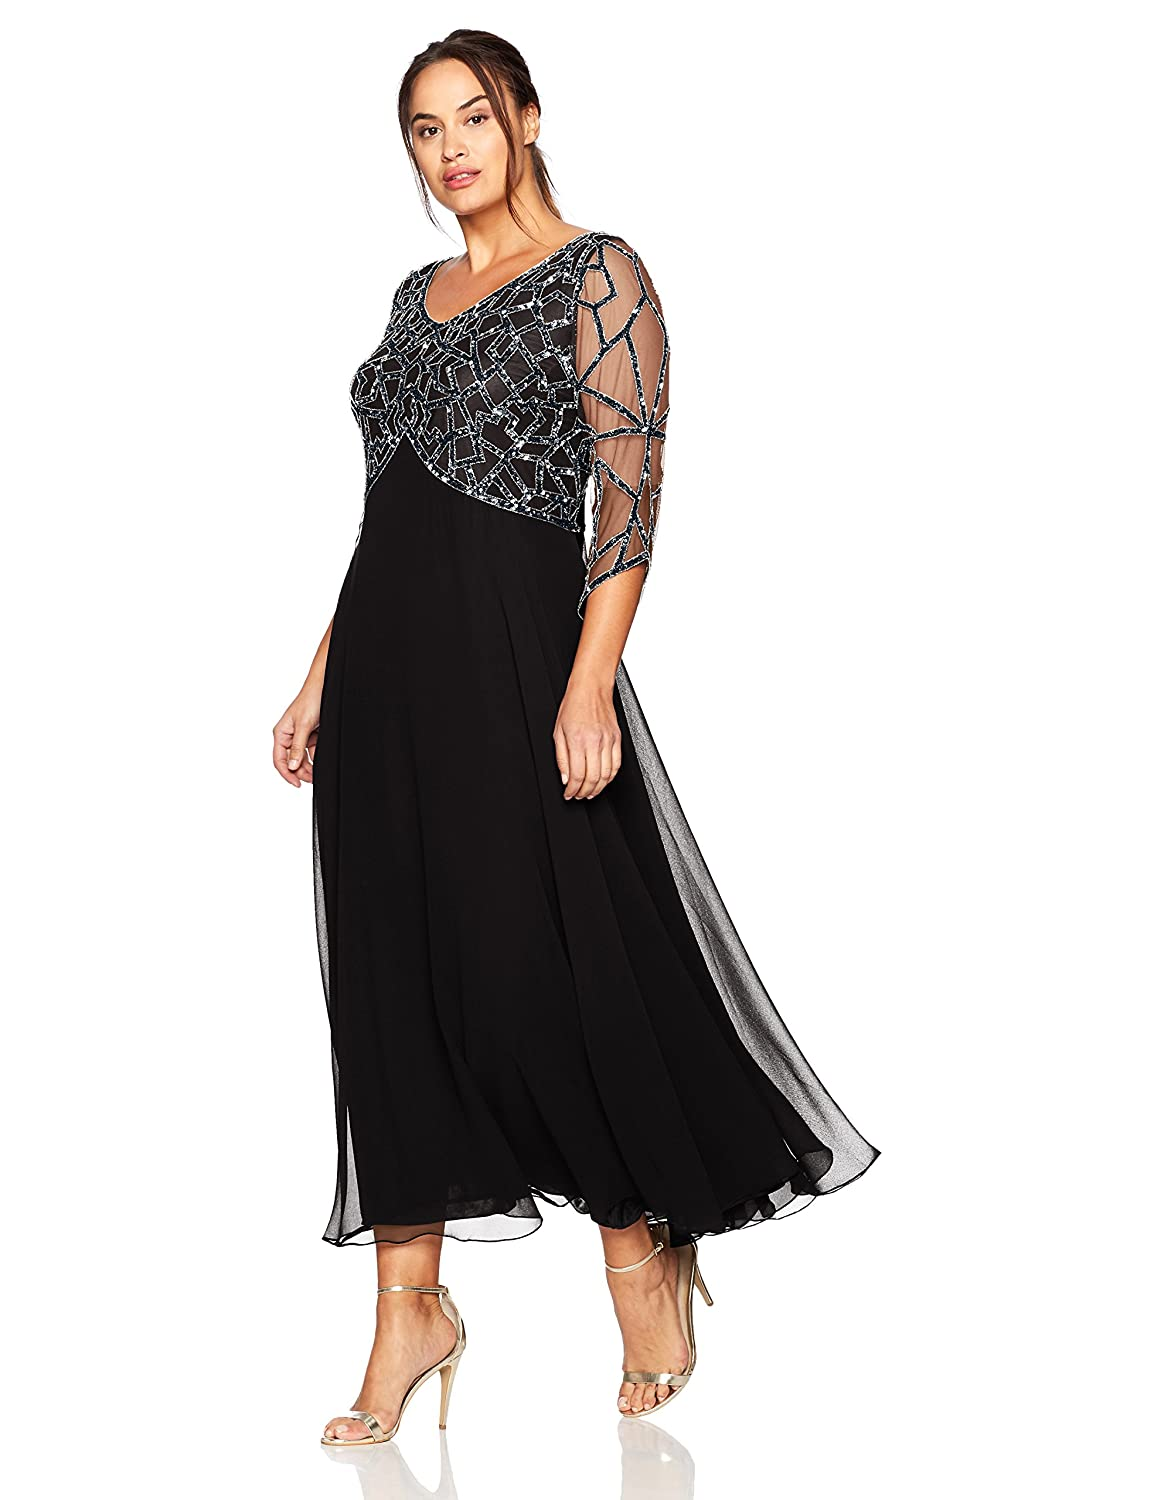 1920s Plus Size Flapper Dresses, Gatsby Dresses, Flapper Costumes J Kara Womens Plus Size 3/4 Sleeve Geo Beaded Gown $238.00 AT vintagedancer.com